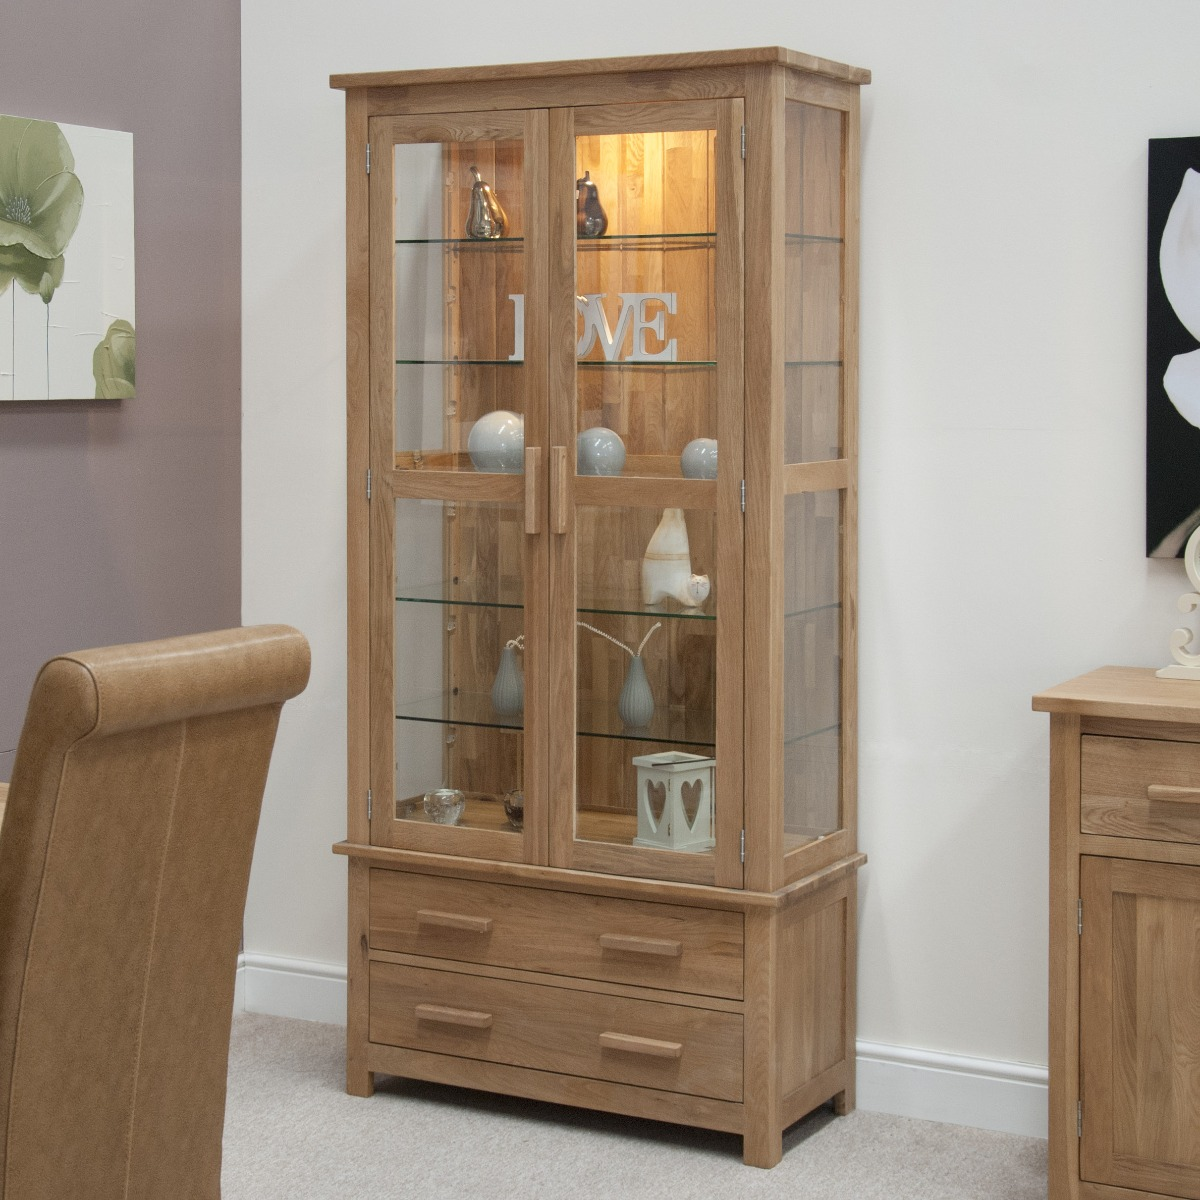 An image of Rohan Oak and Glass Display Cabinet